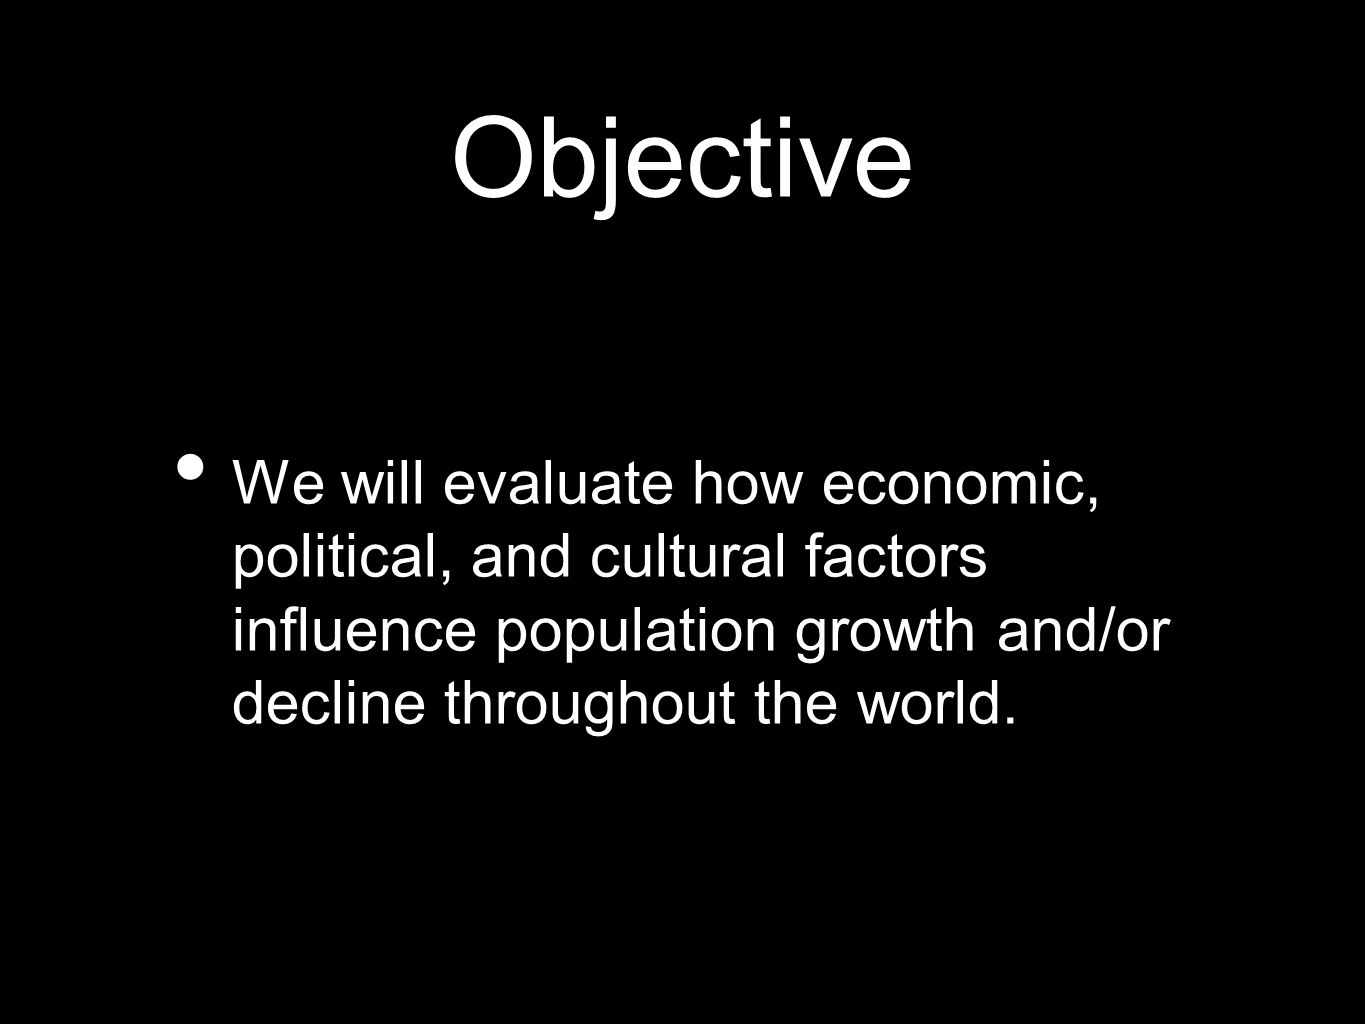 ObjectiveWe will evaluate how economic, political, and cultural factors influence population growth and/or decline throughout the world.